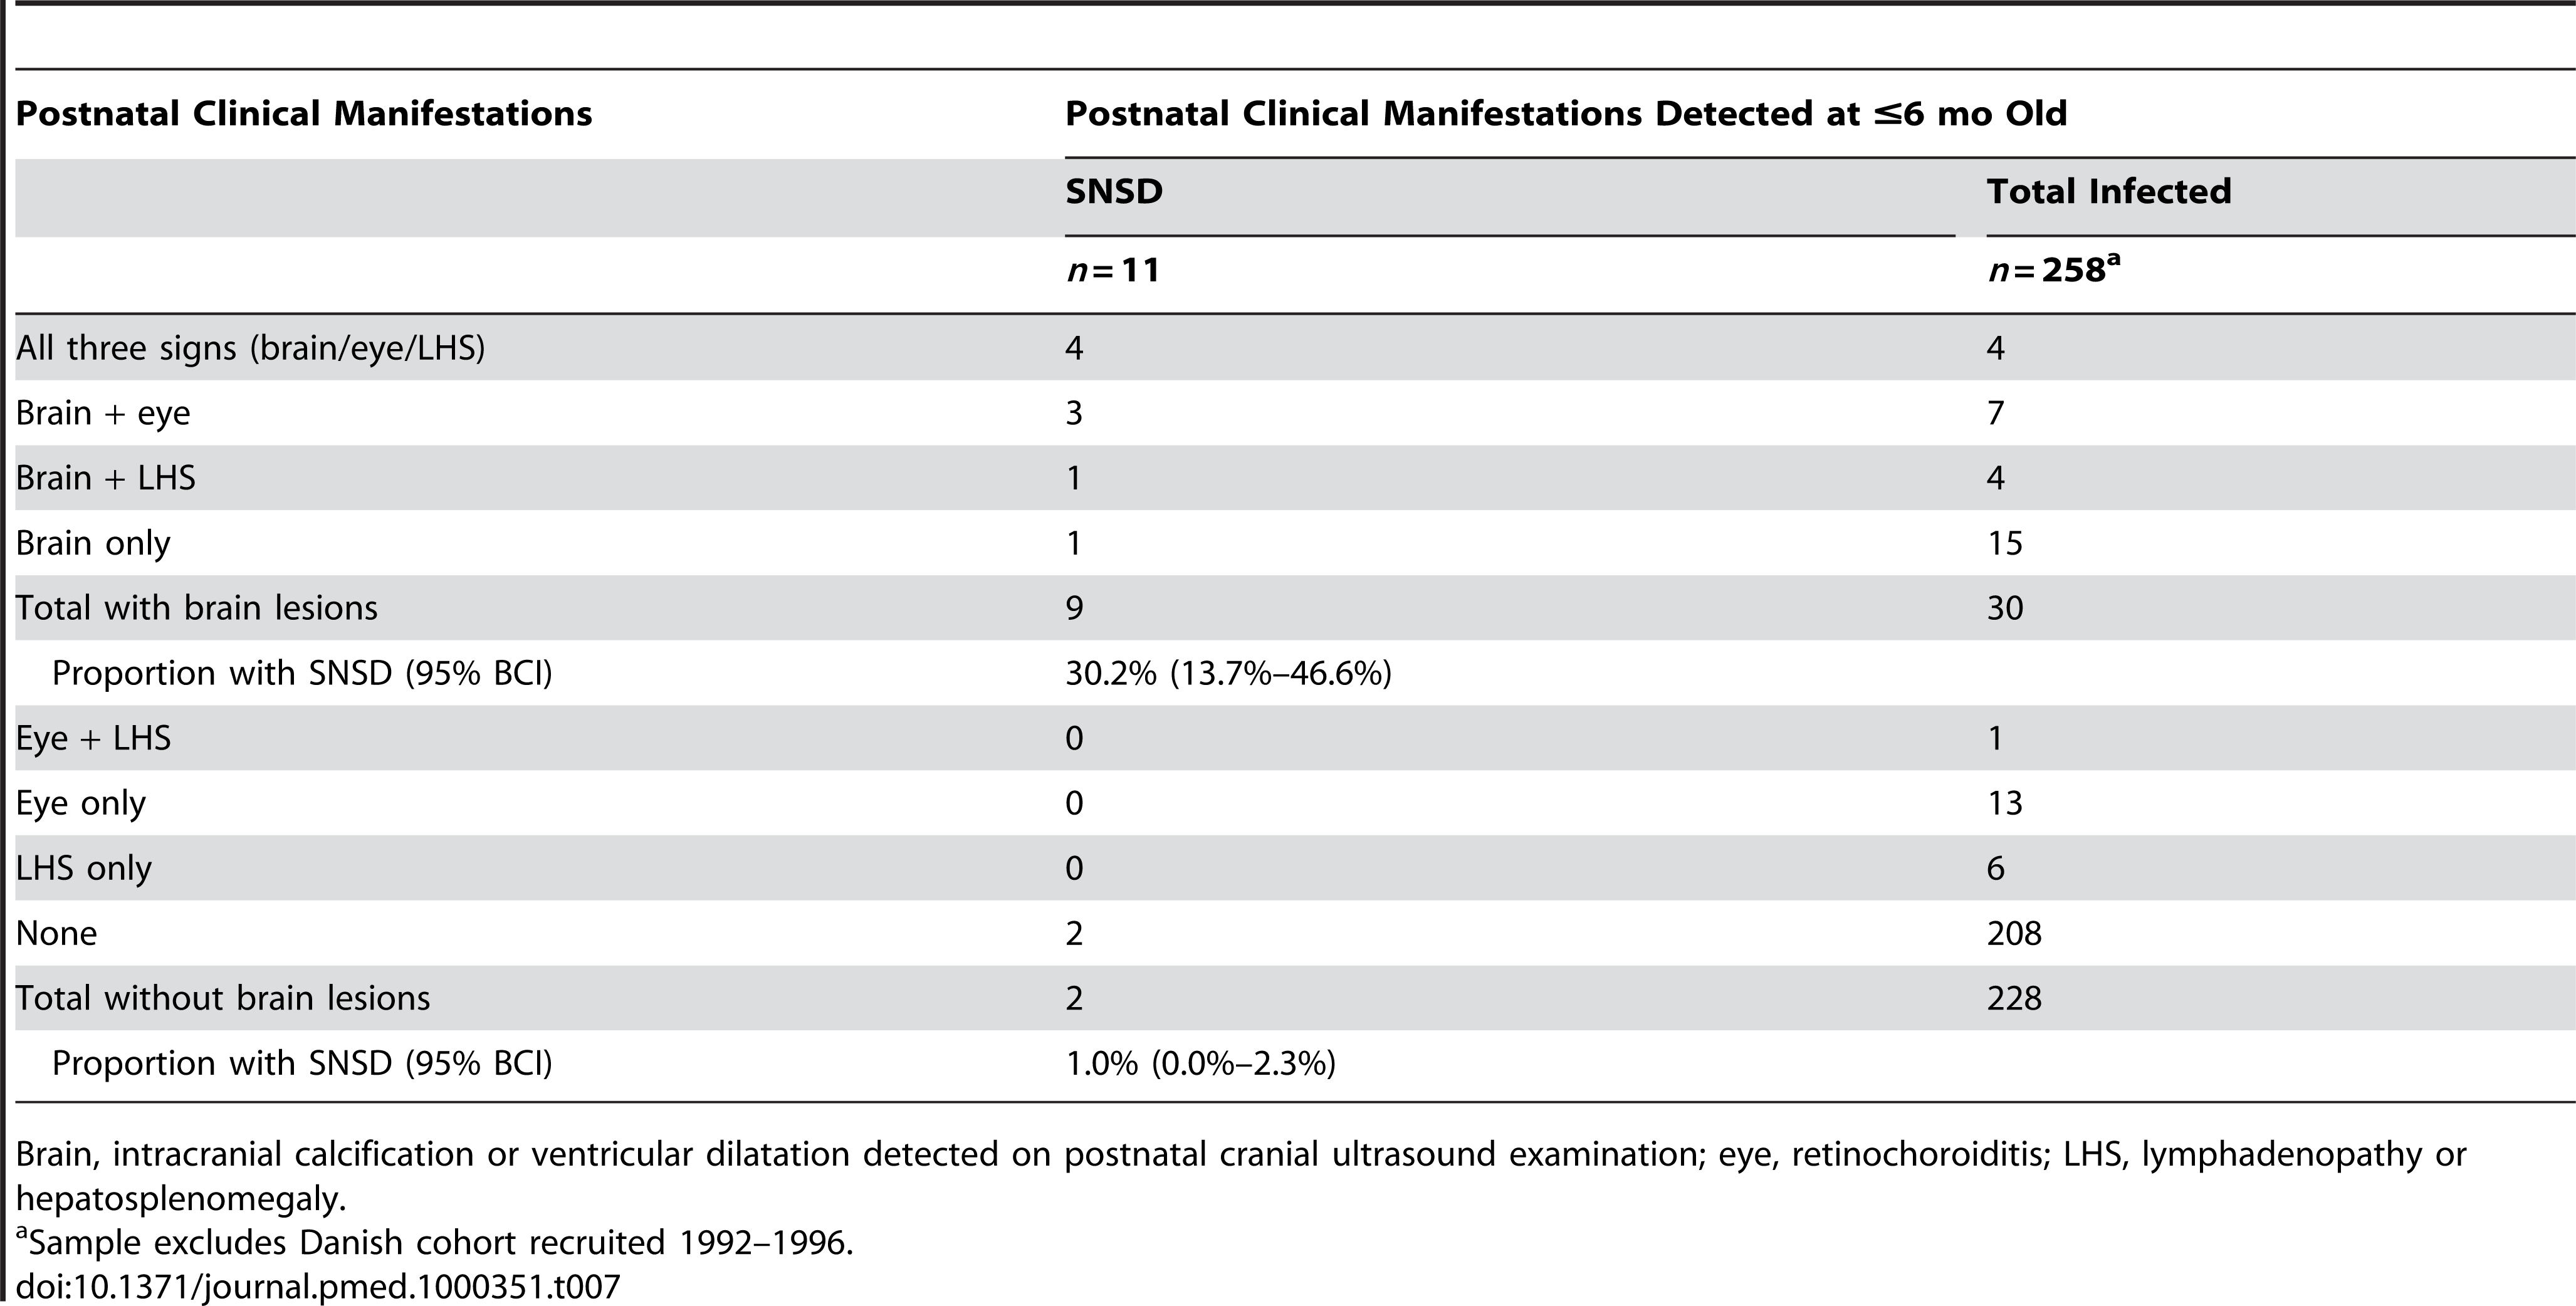 Postnatal clinical manifestations detected in early infancy and probability (%) of SNSD.